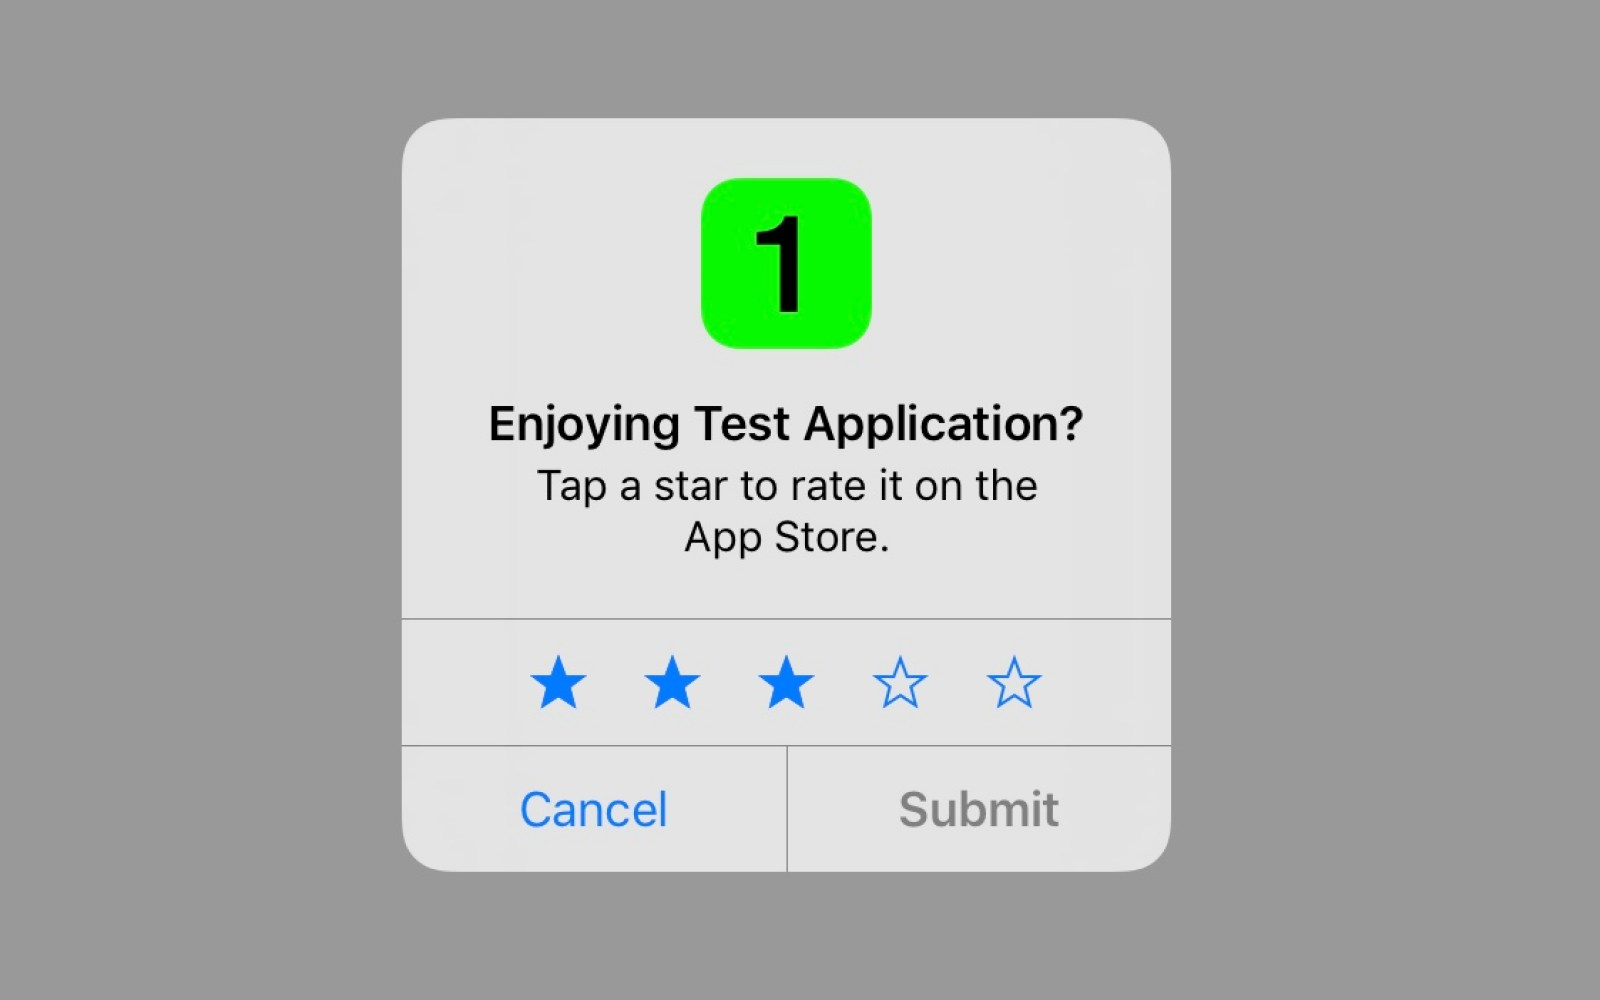 Apple will eventually require apps to use the new iOS 10.3 API for App Store rating popups